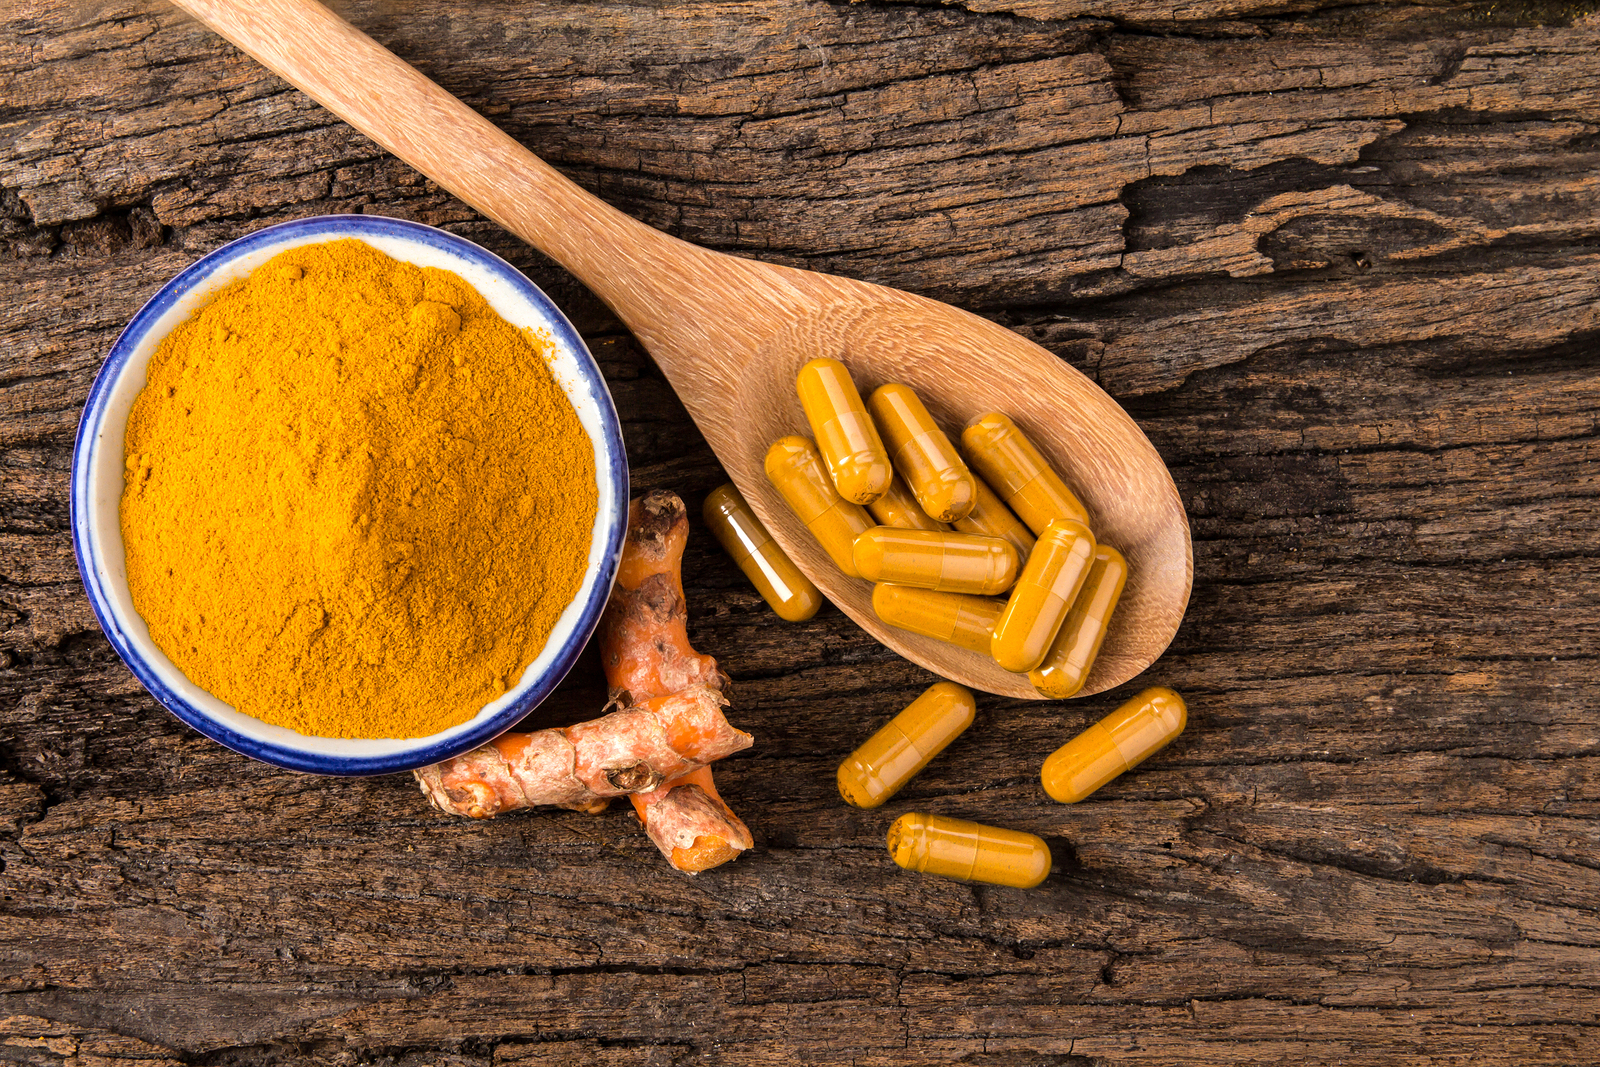 Curcumin Composite Could Help Relieve Arthritis, According to Study